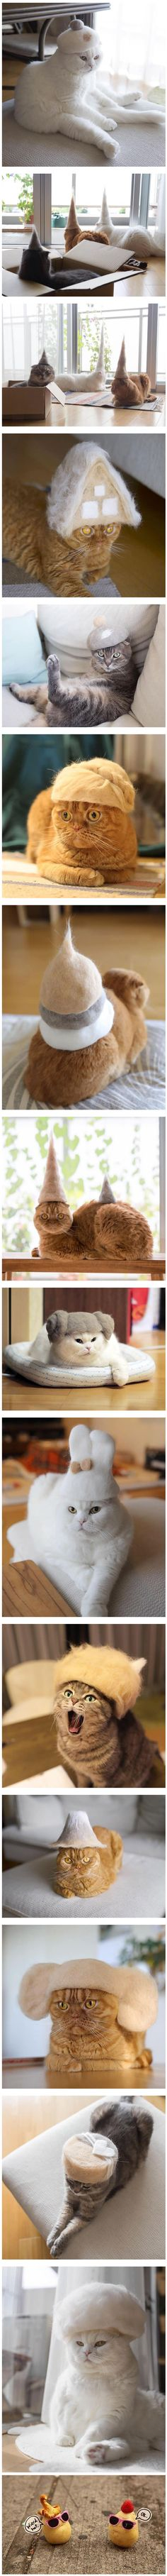 Photographer Makes Hats For His Cats Using Their Own Fluff